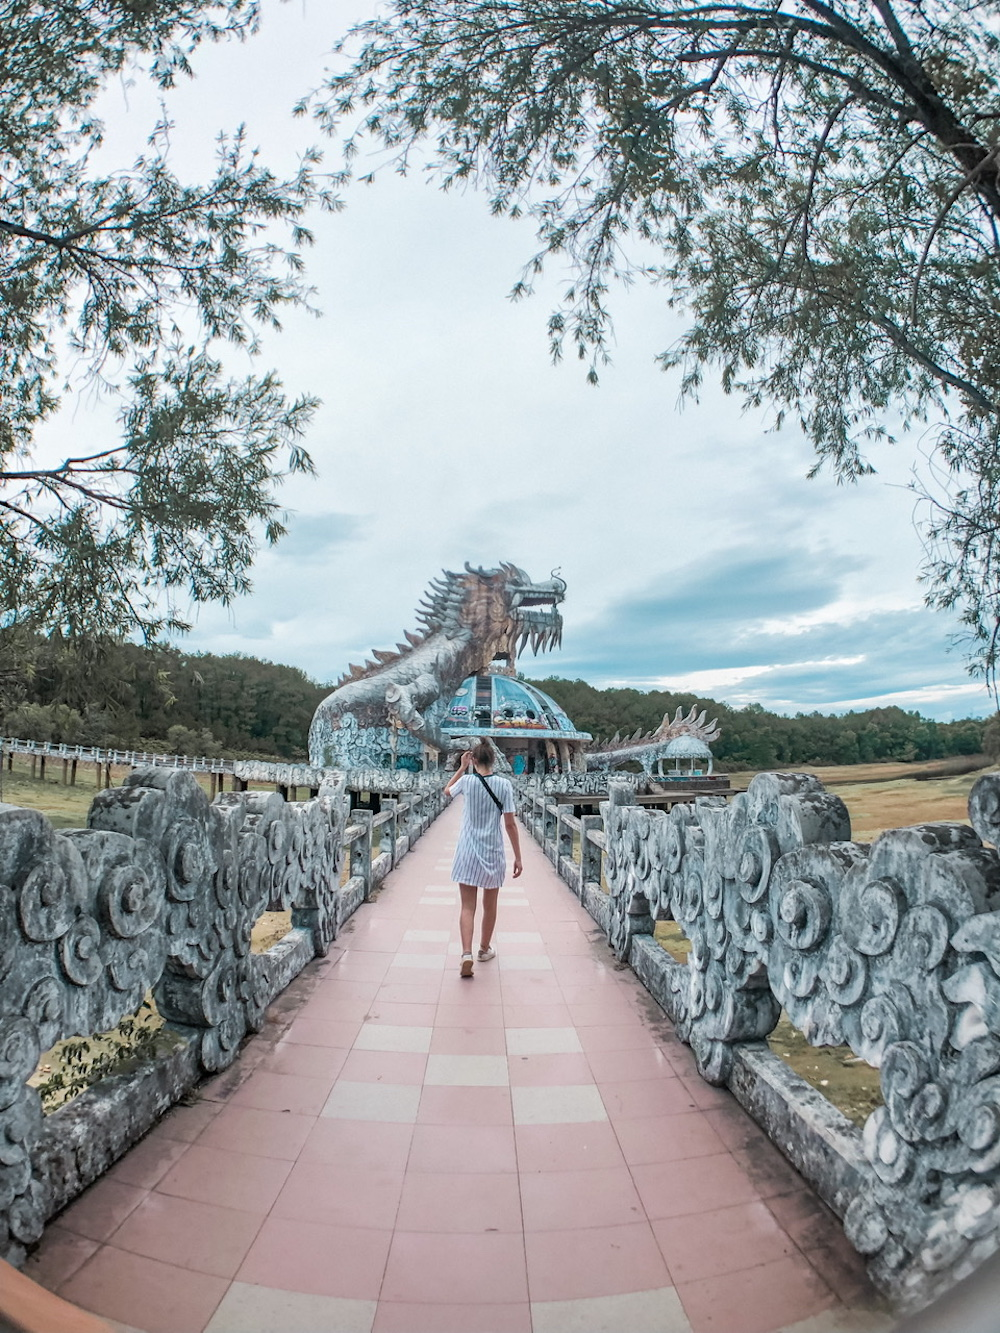 vietnam abandoned waterpark backpack route hue